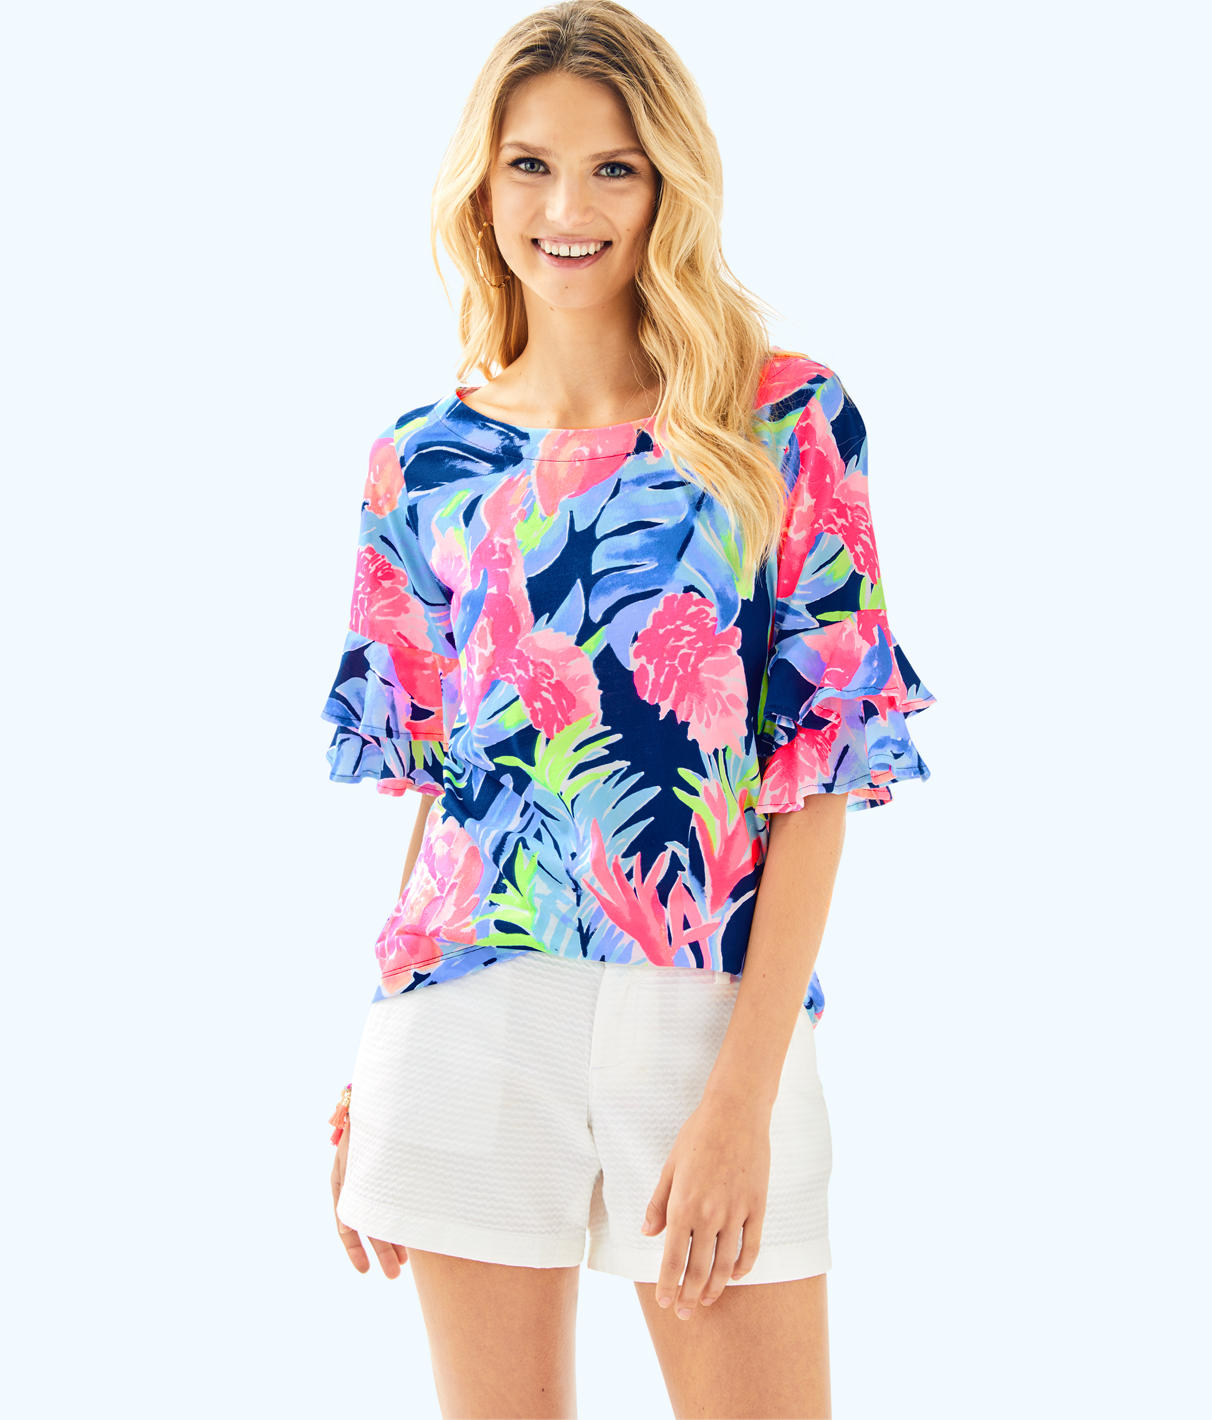 Lilly Pulitzer Lilly Pulitzer Womens Lula Top